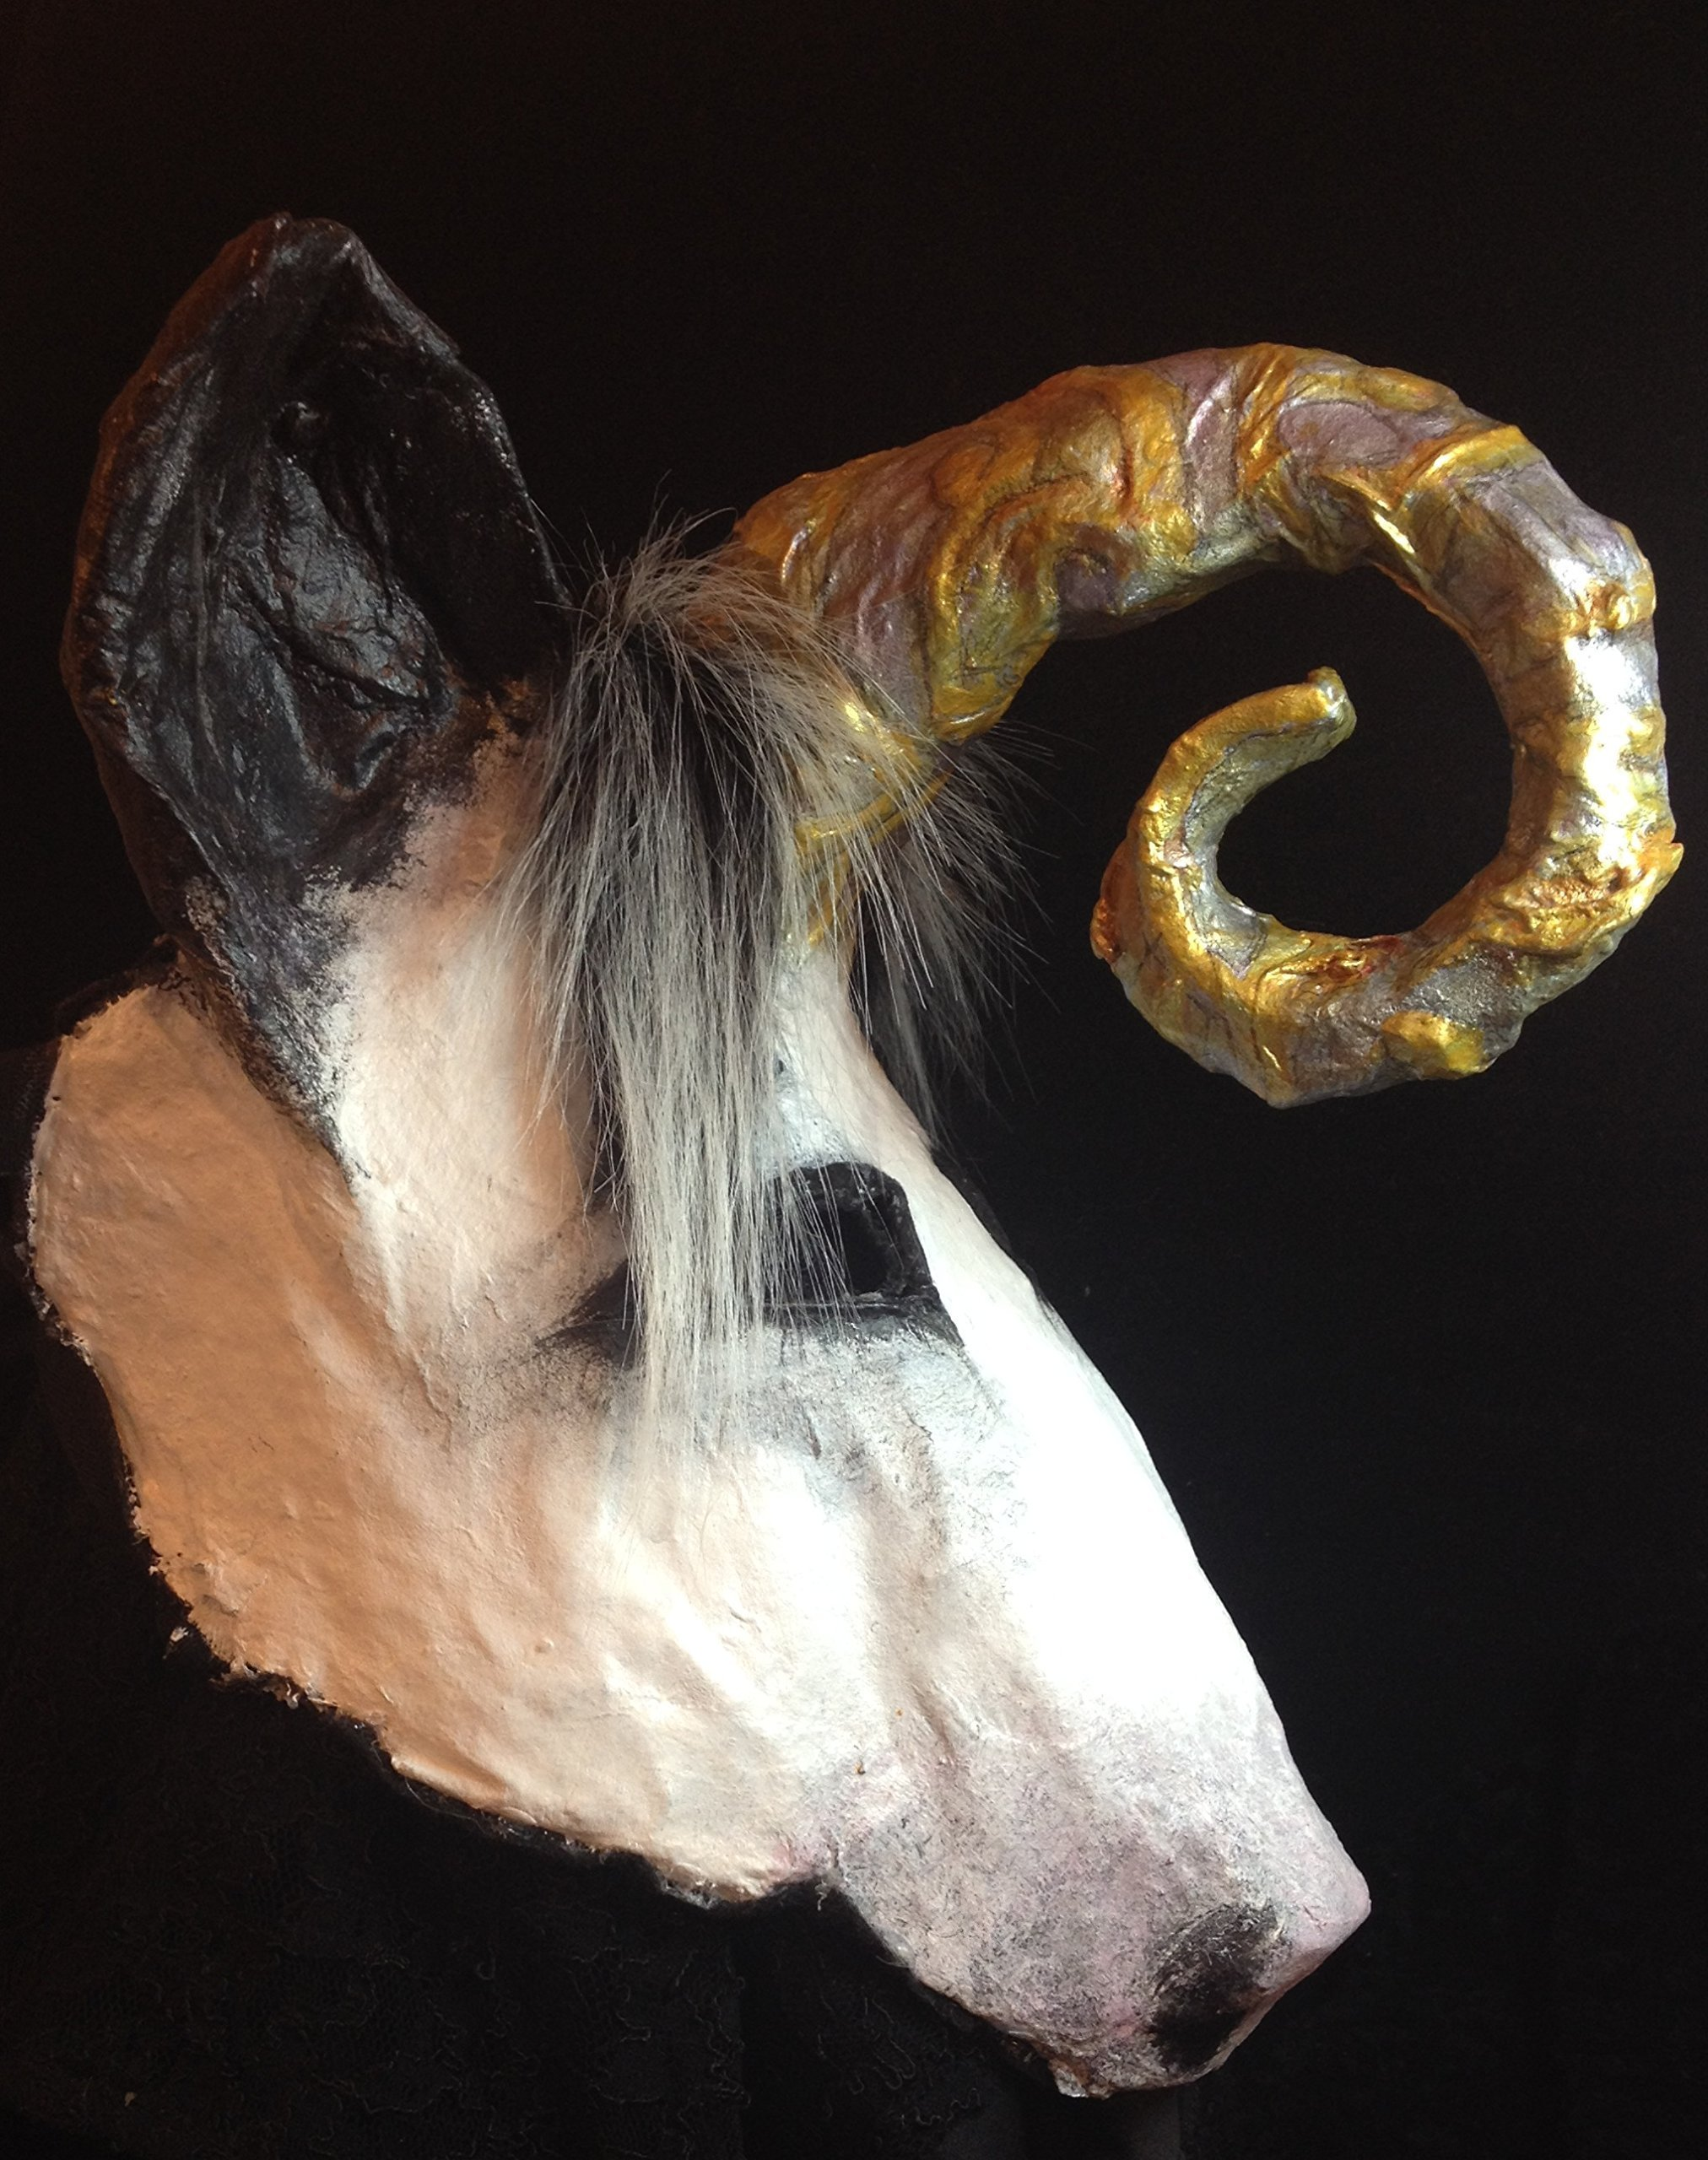 Unicorn mask, a magical cosplay mask. Fantastic animal mask for adult or kid. A unique original party character and fursona. Designer mask, with backstory. Great for photoshoots, Halloween, or costume